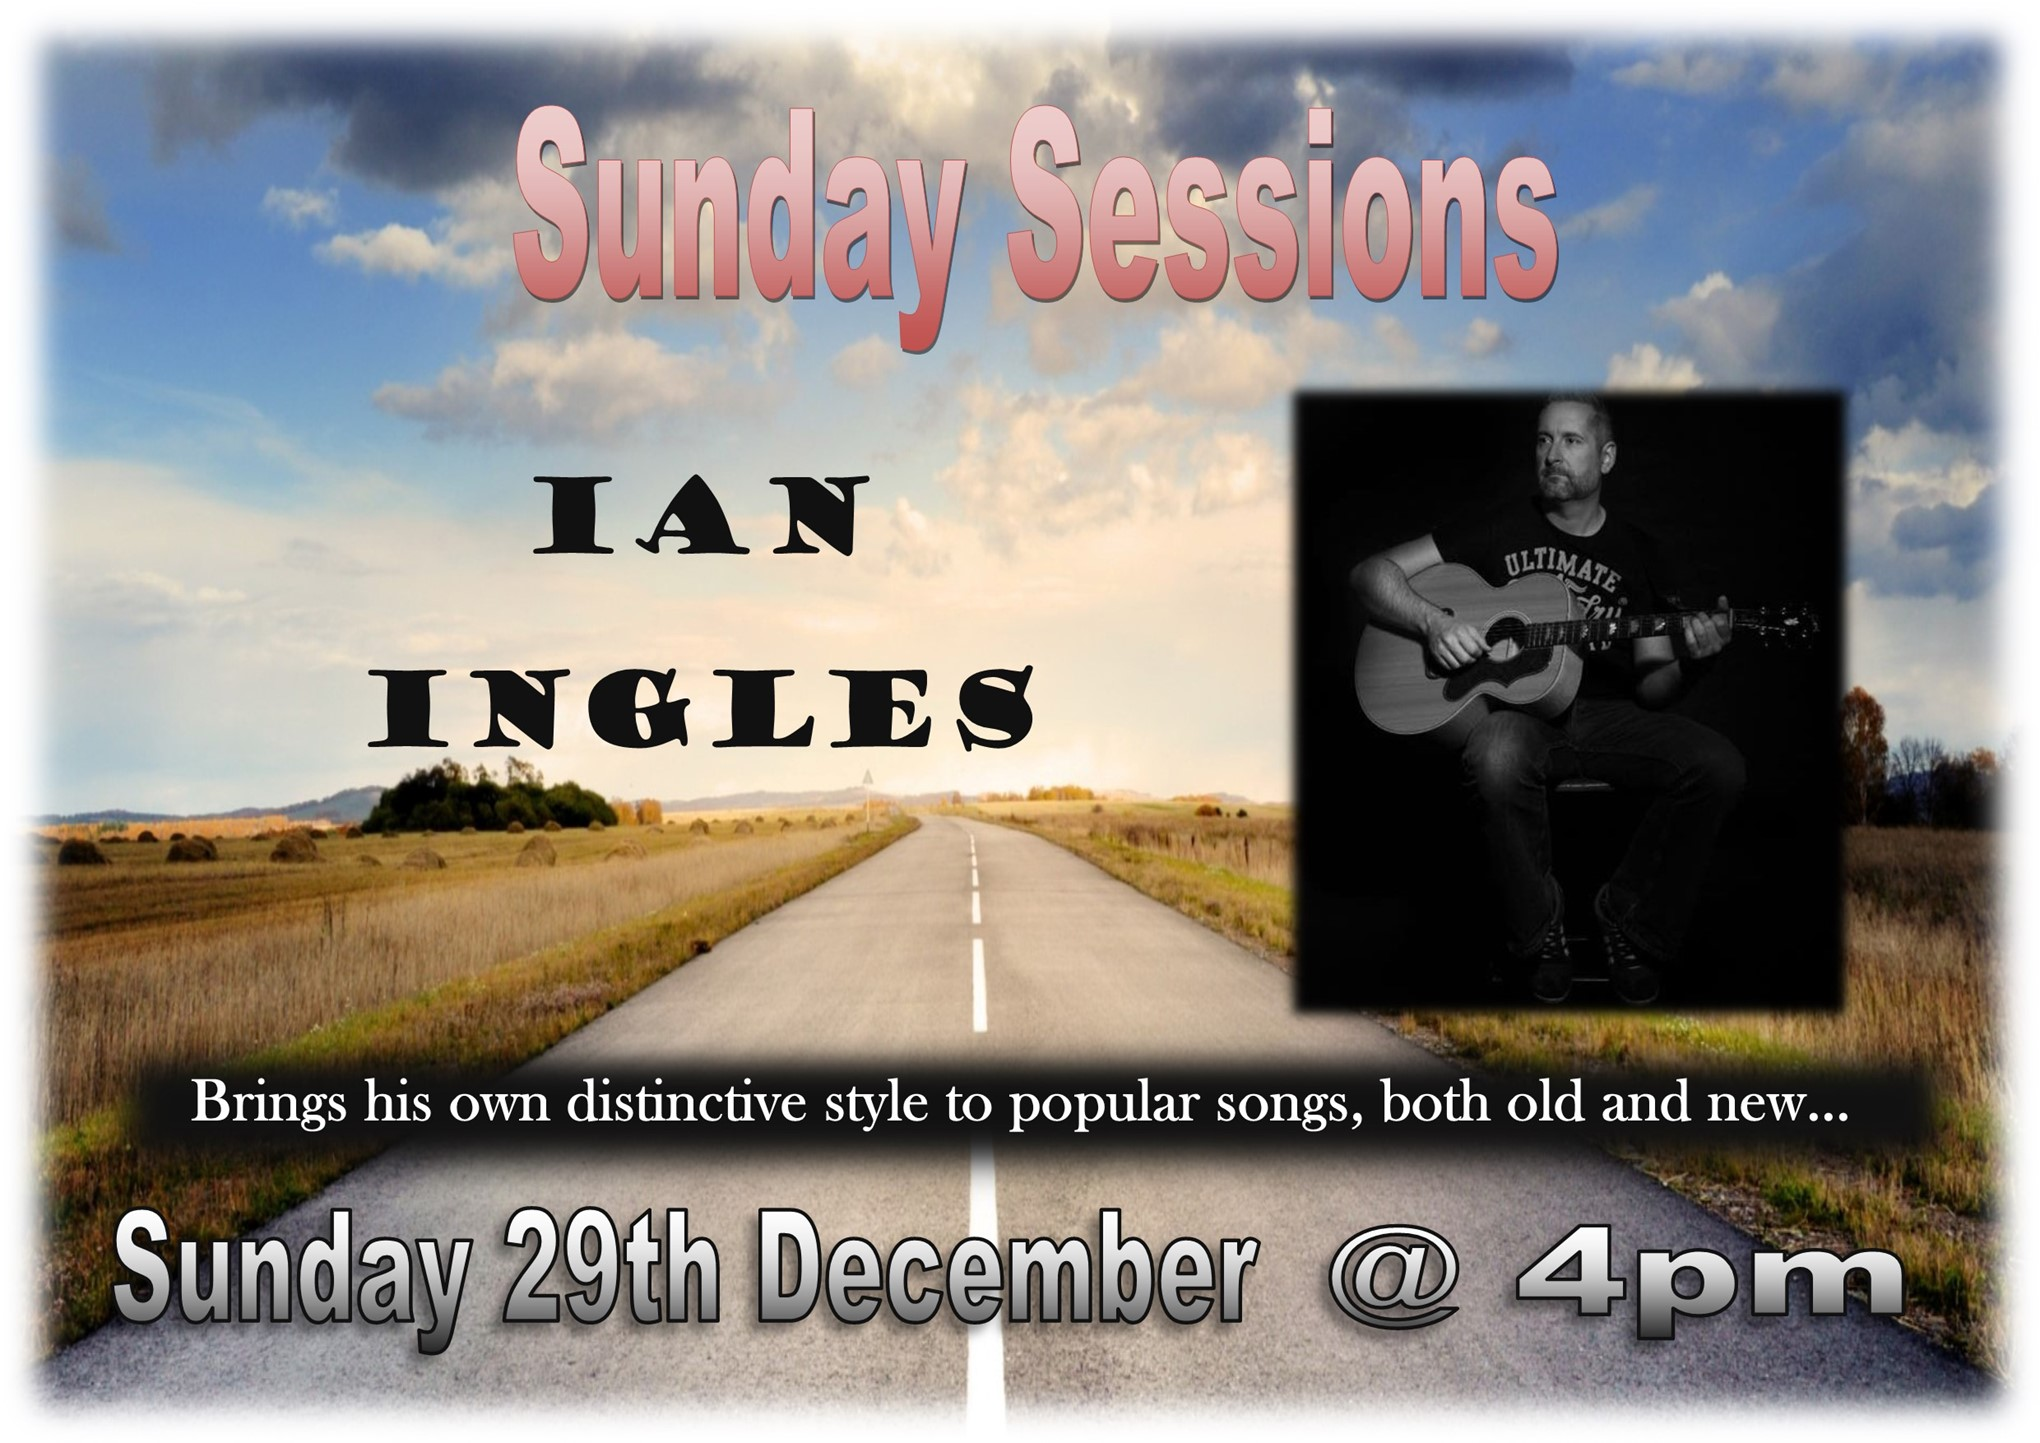 Sundfay Sessions with Ian Ingle